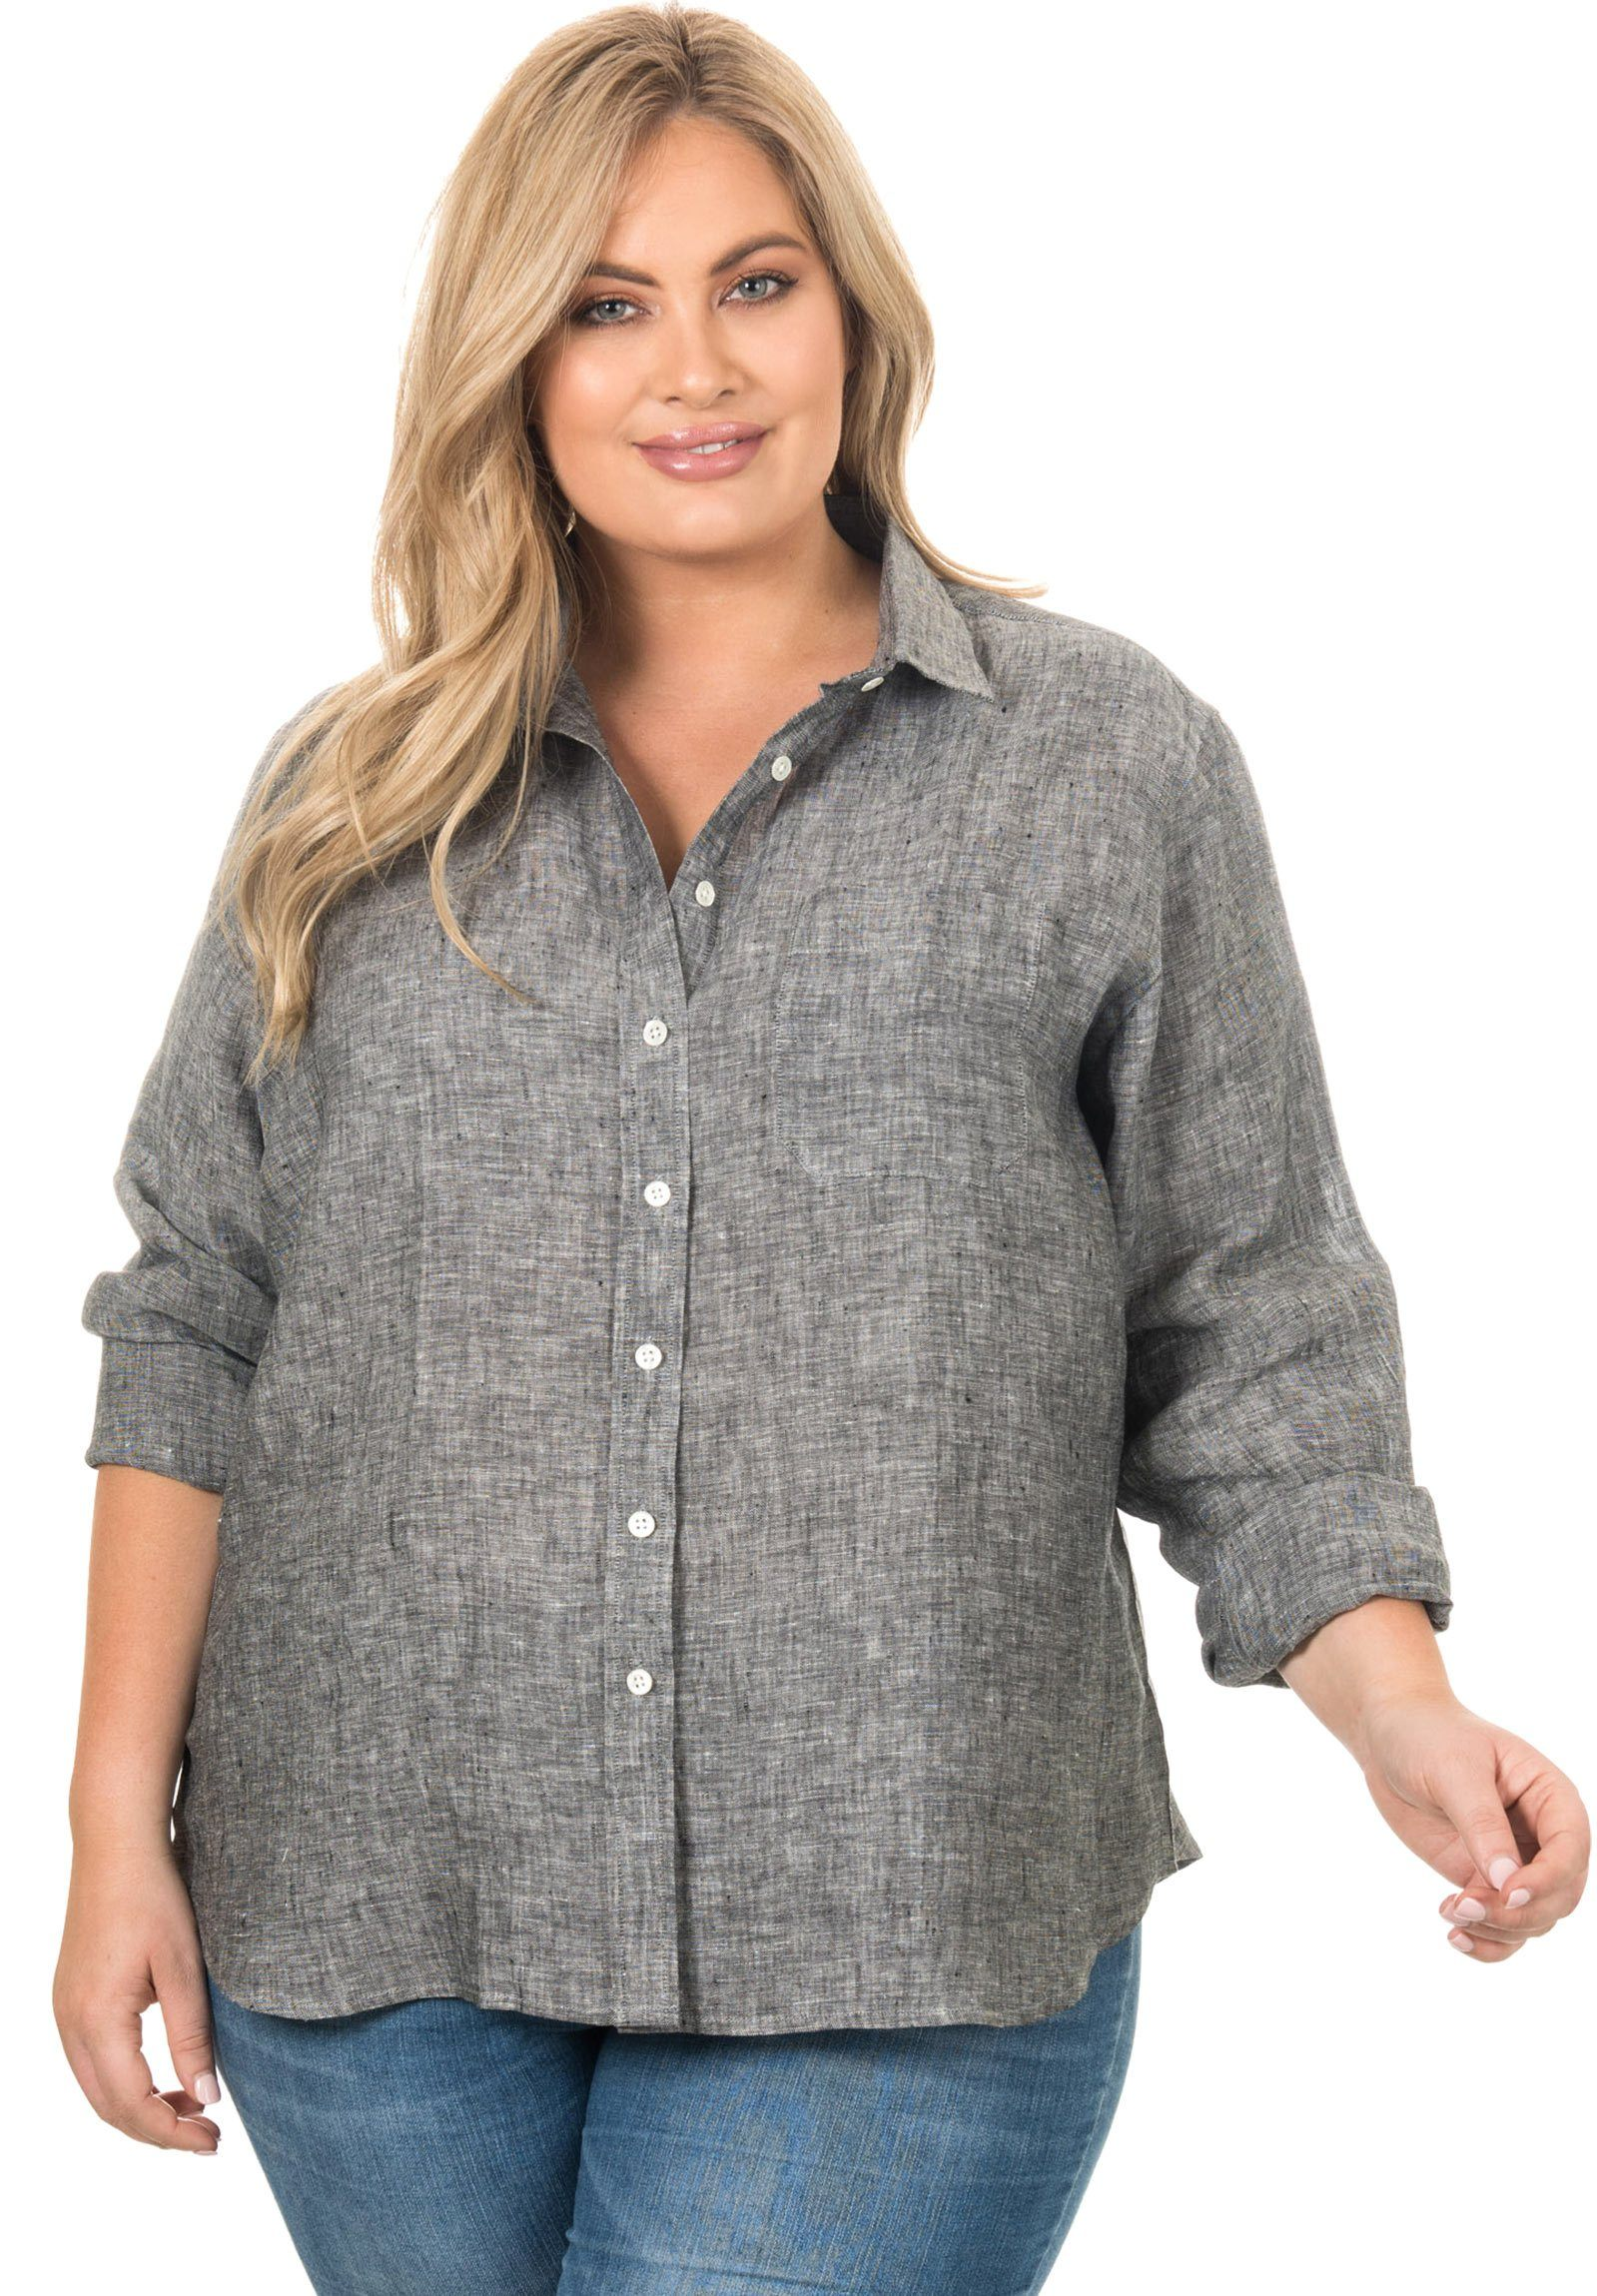 Iris Black Melange, Plus Size Shirt